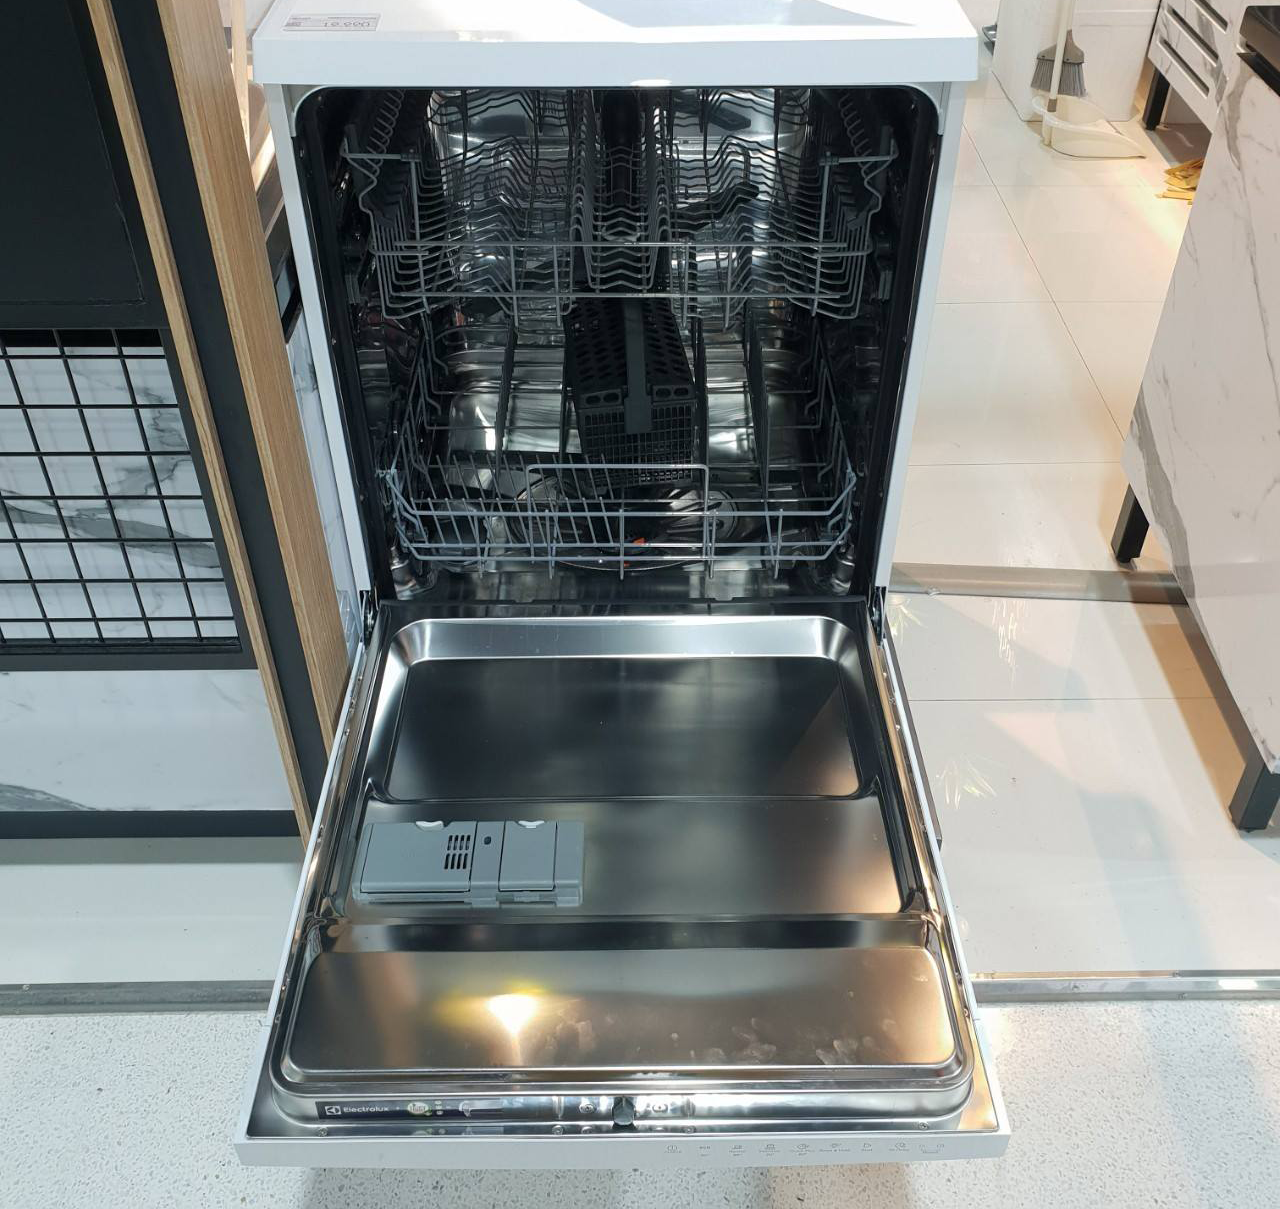 affordable dishwashers in singapore - Electrolux ESF5206LOW with Air Dry freestanding dishwasher